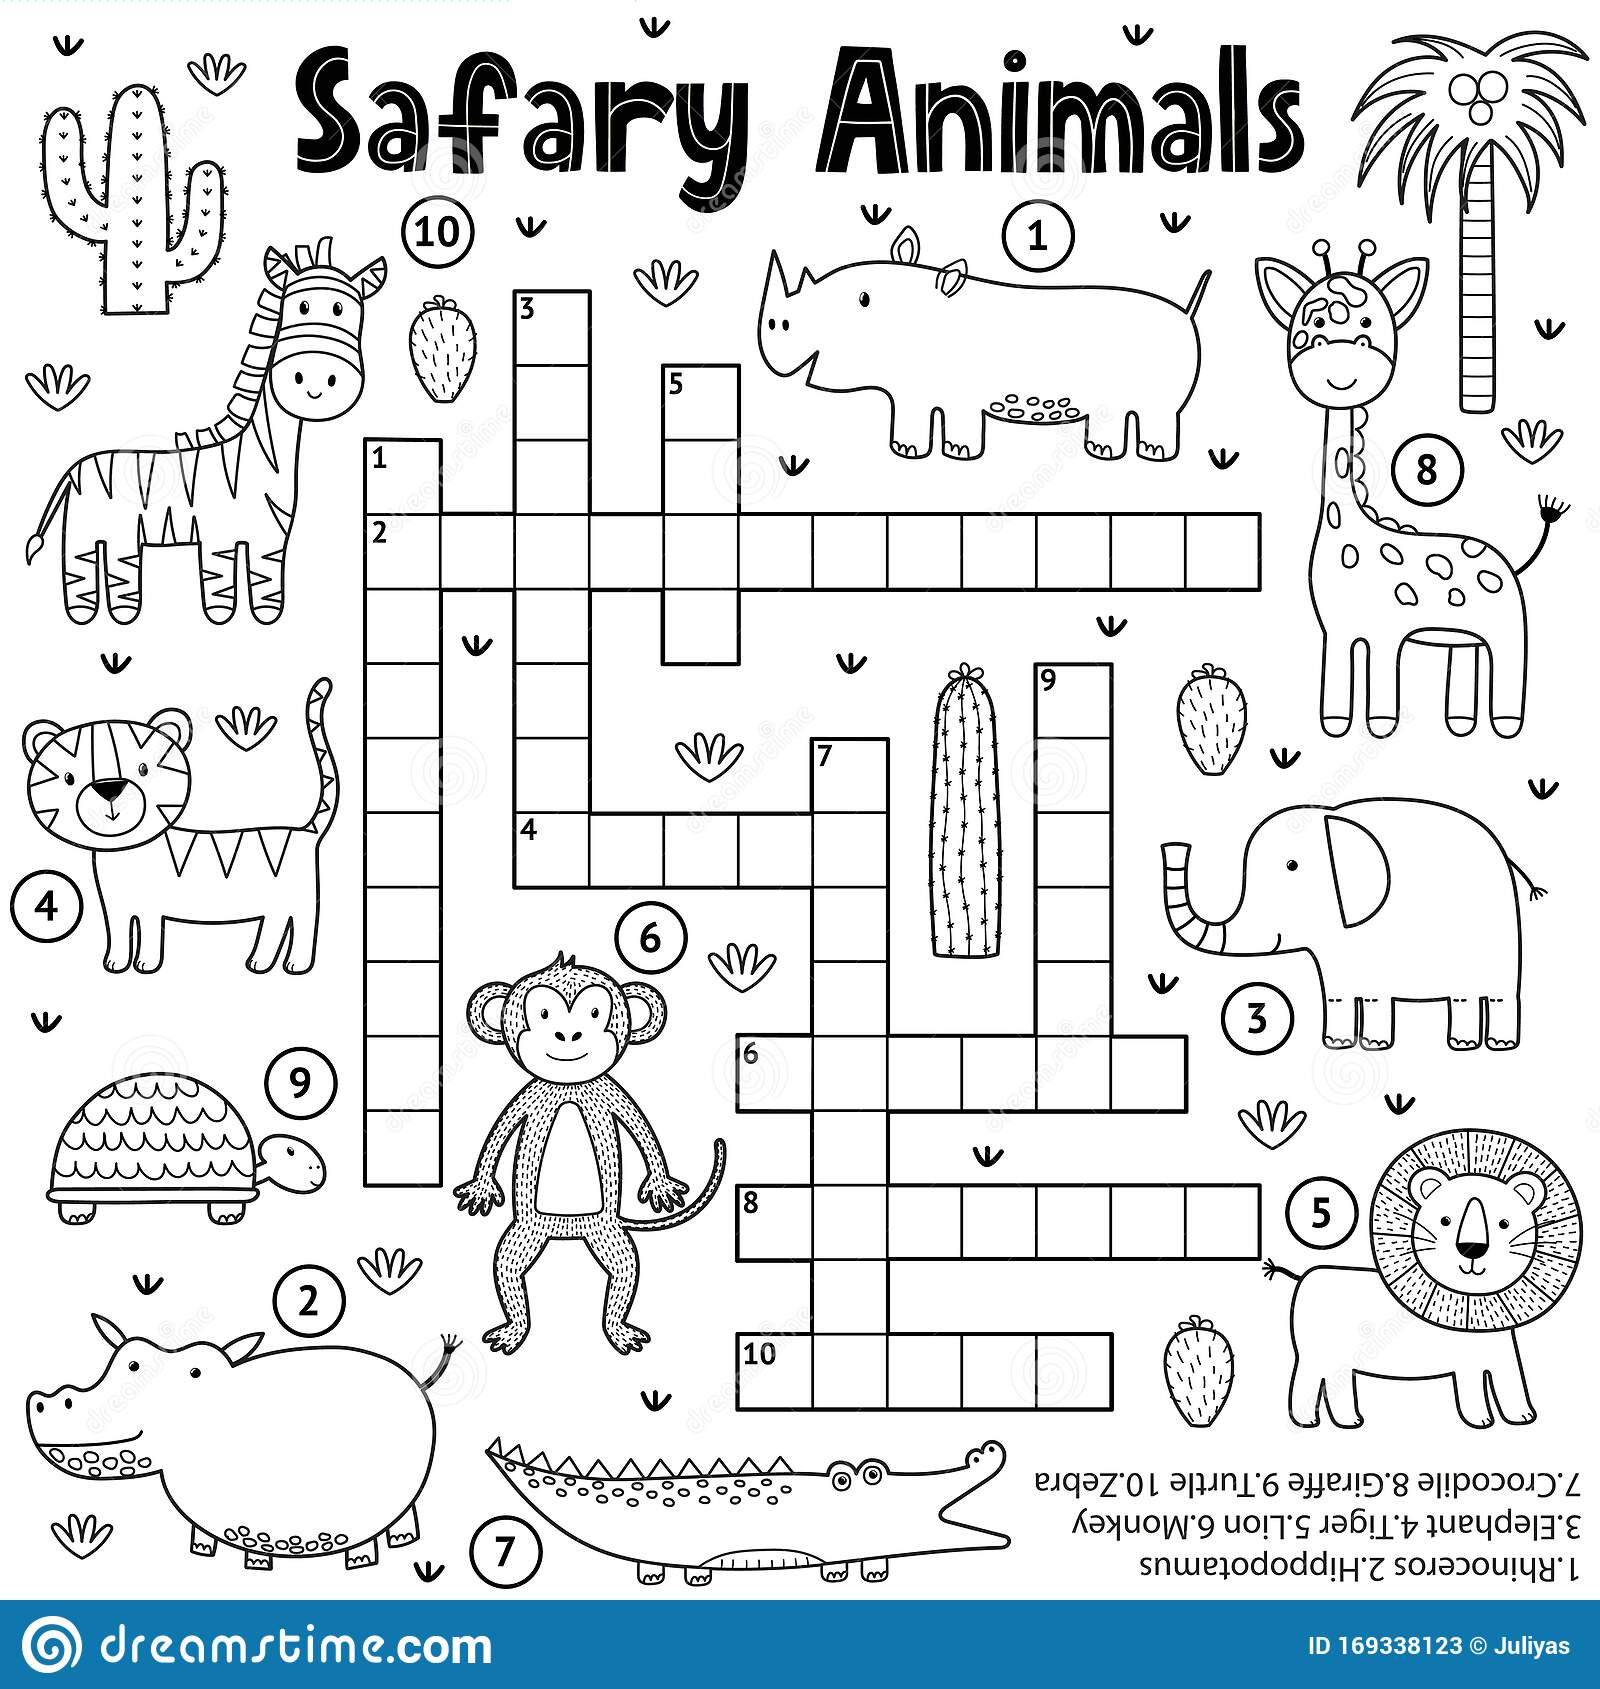 Black And White Crossword Game For Kids With Safari